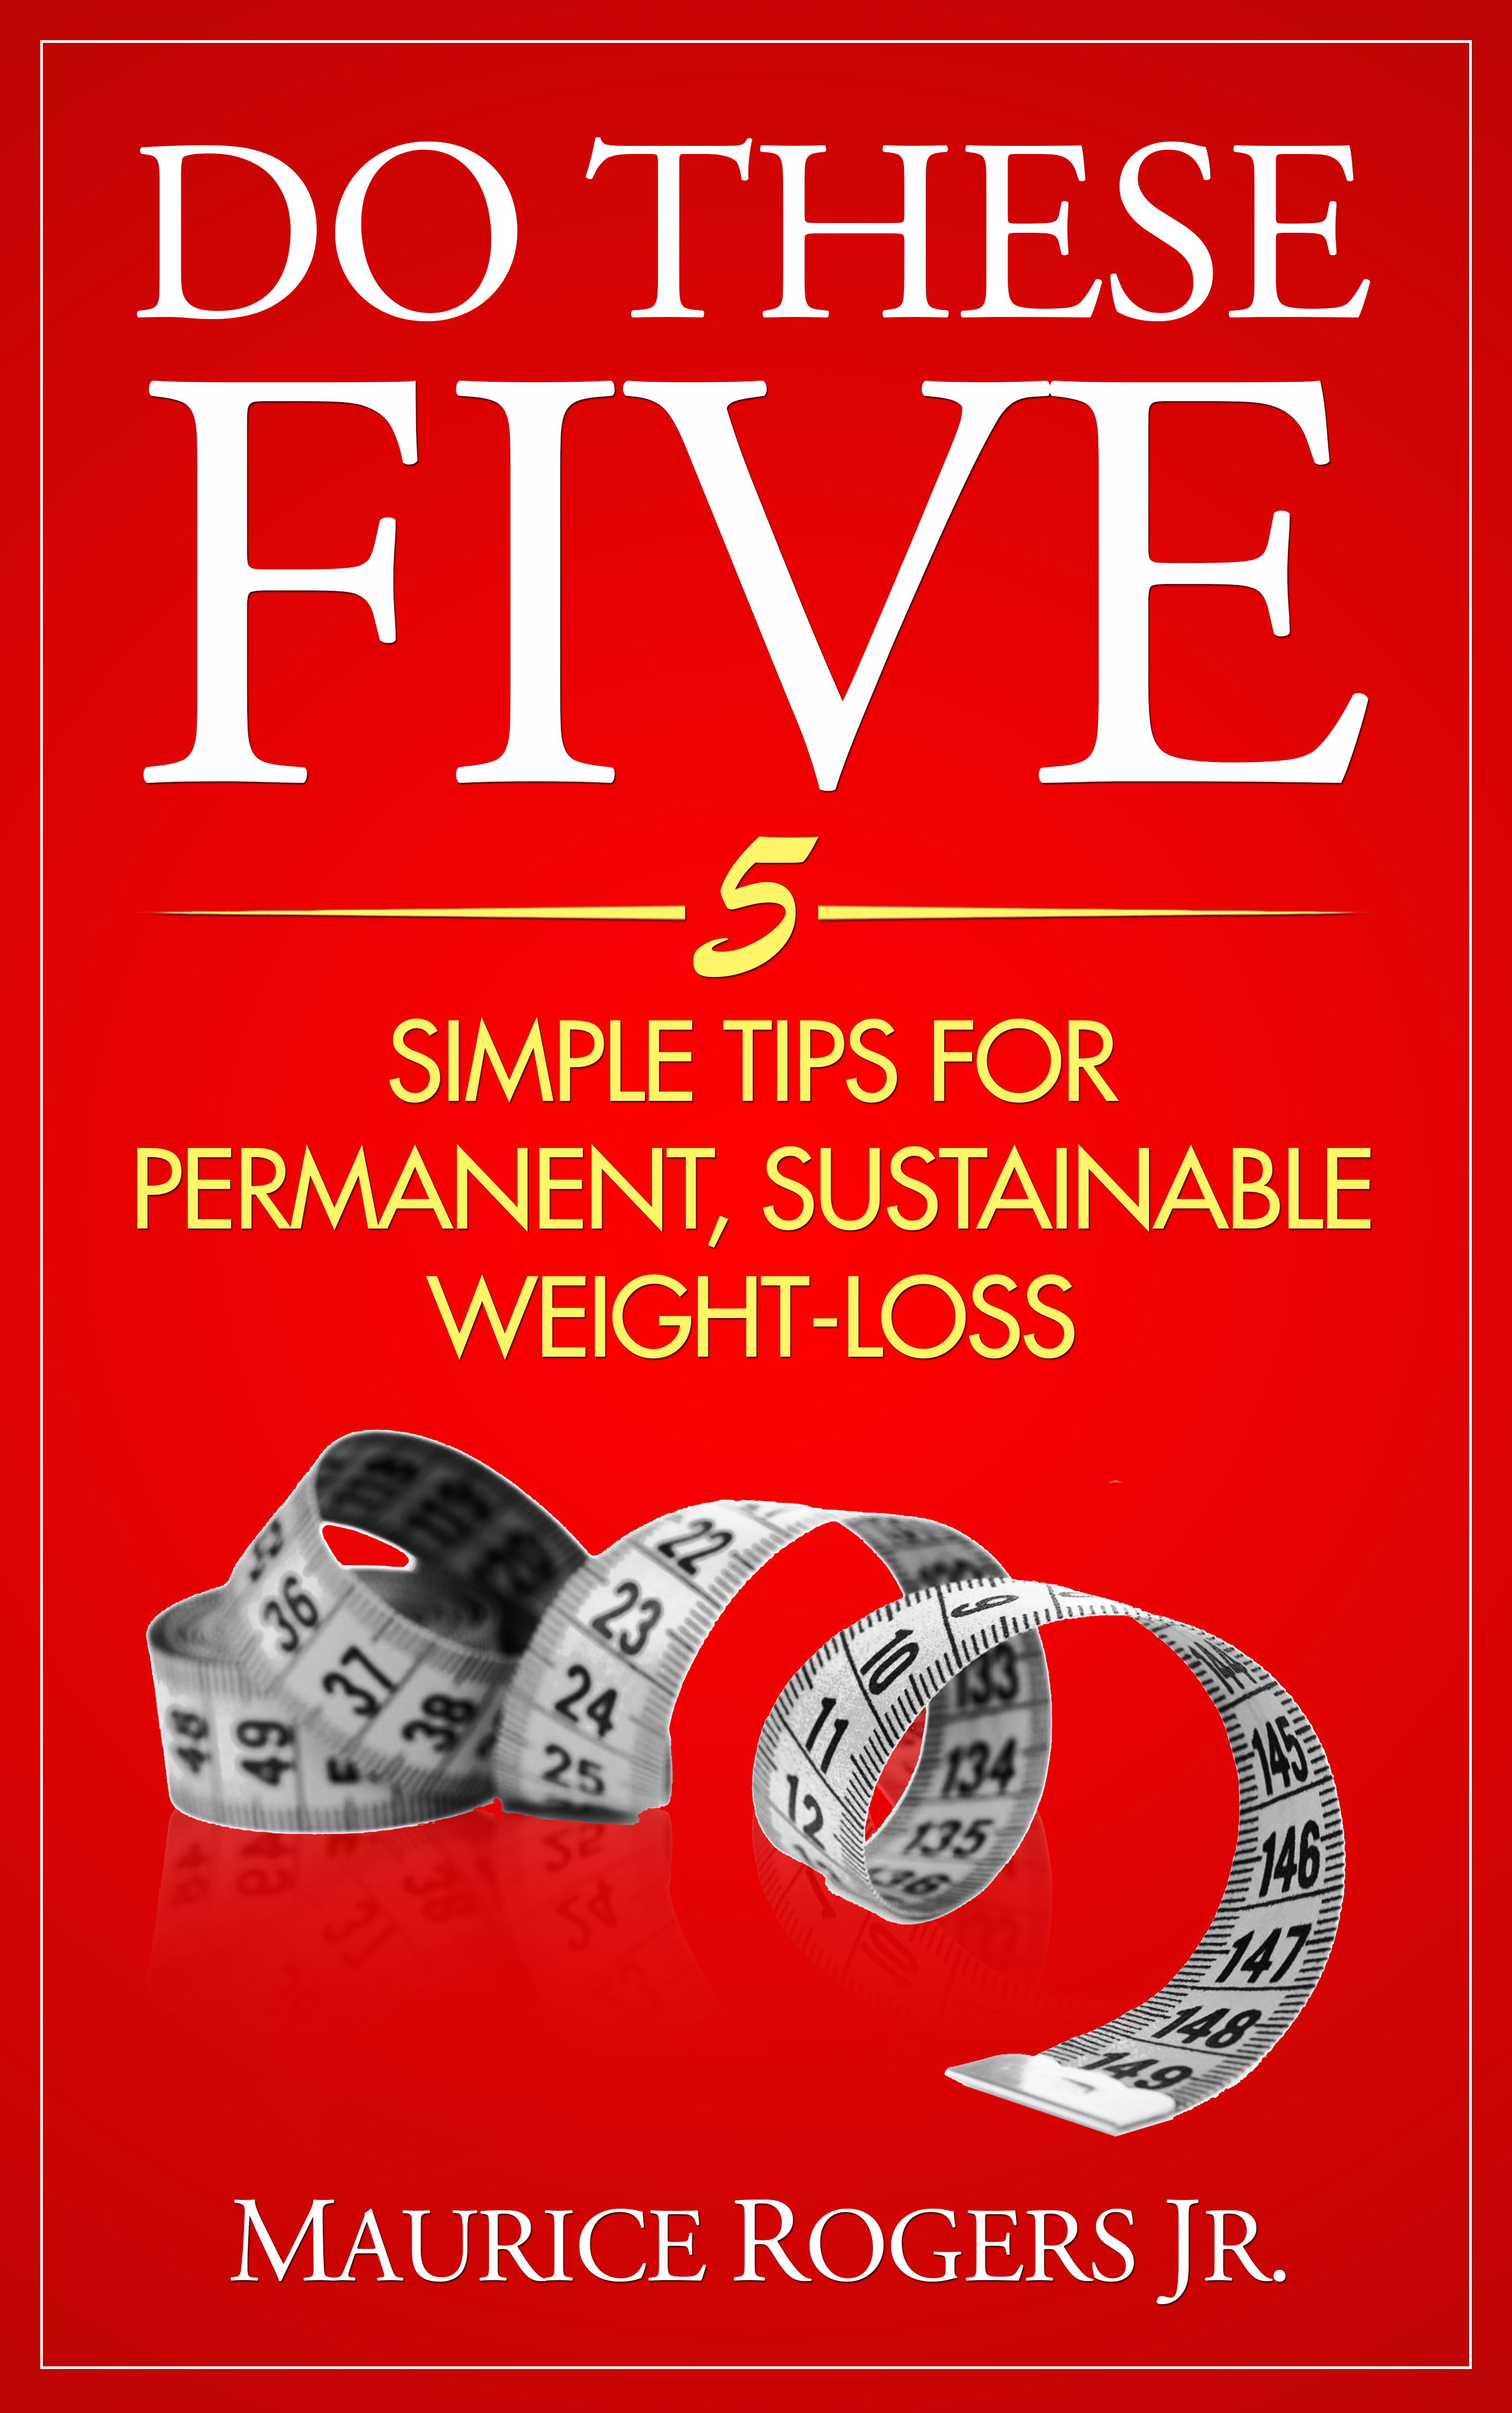 Do These Five: 5 Simple tips for permanent, sustainable weight-loss  by  Maurice Rogers Jr.